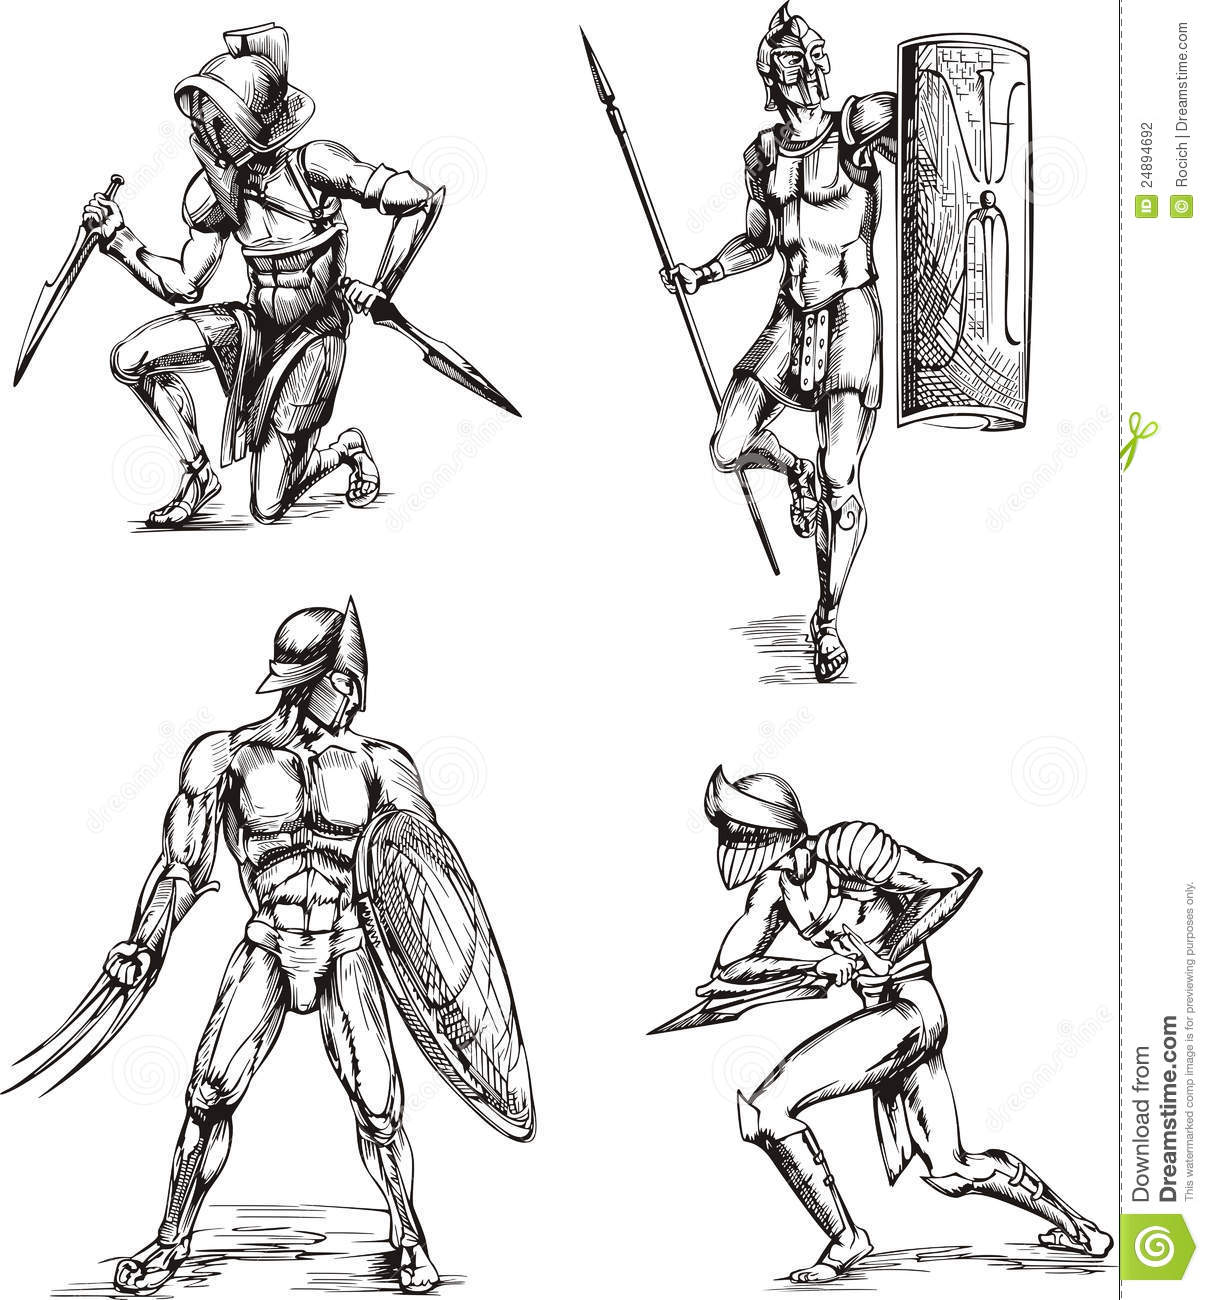 Gladiator sketch drawings nude porn gallery